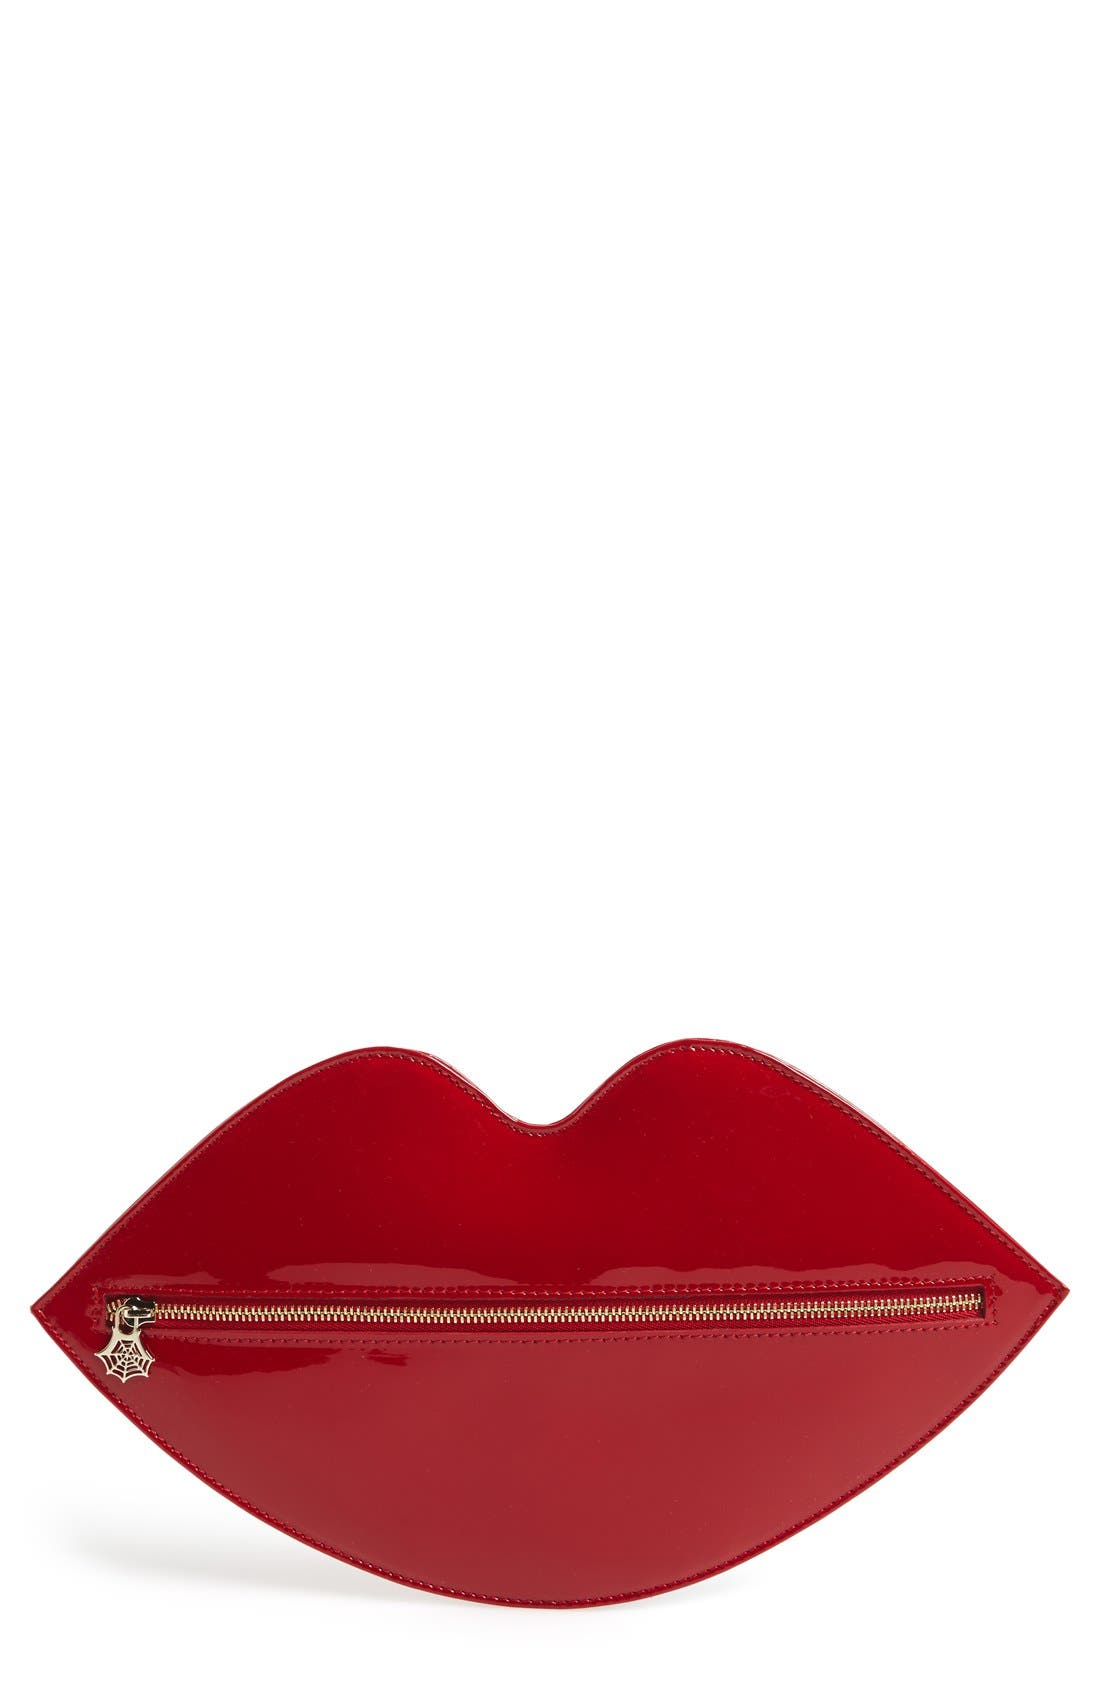 Alternate Image 1 Selected - Charlotte Olympia Lip Shaped Clutch